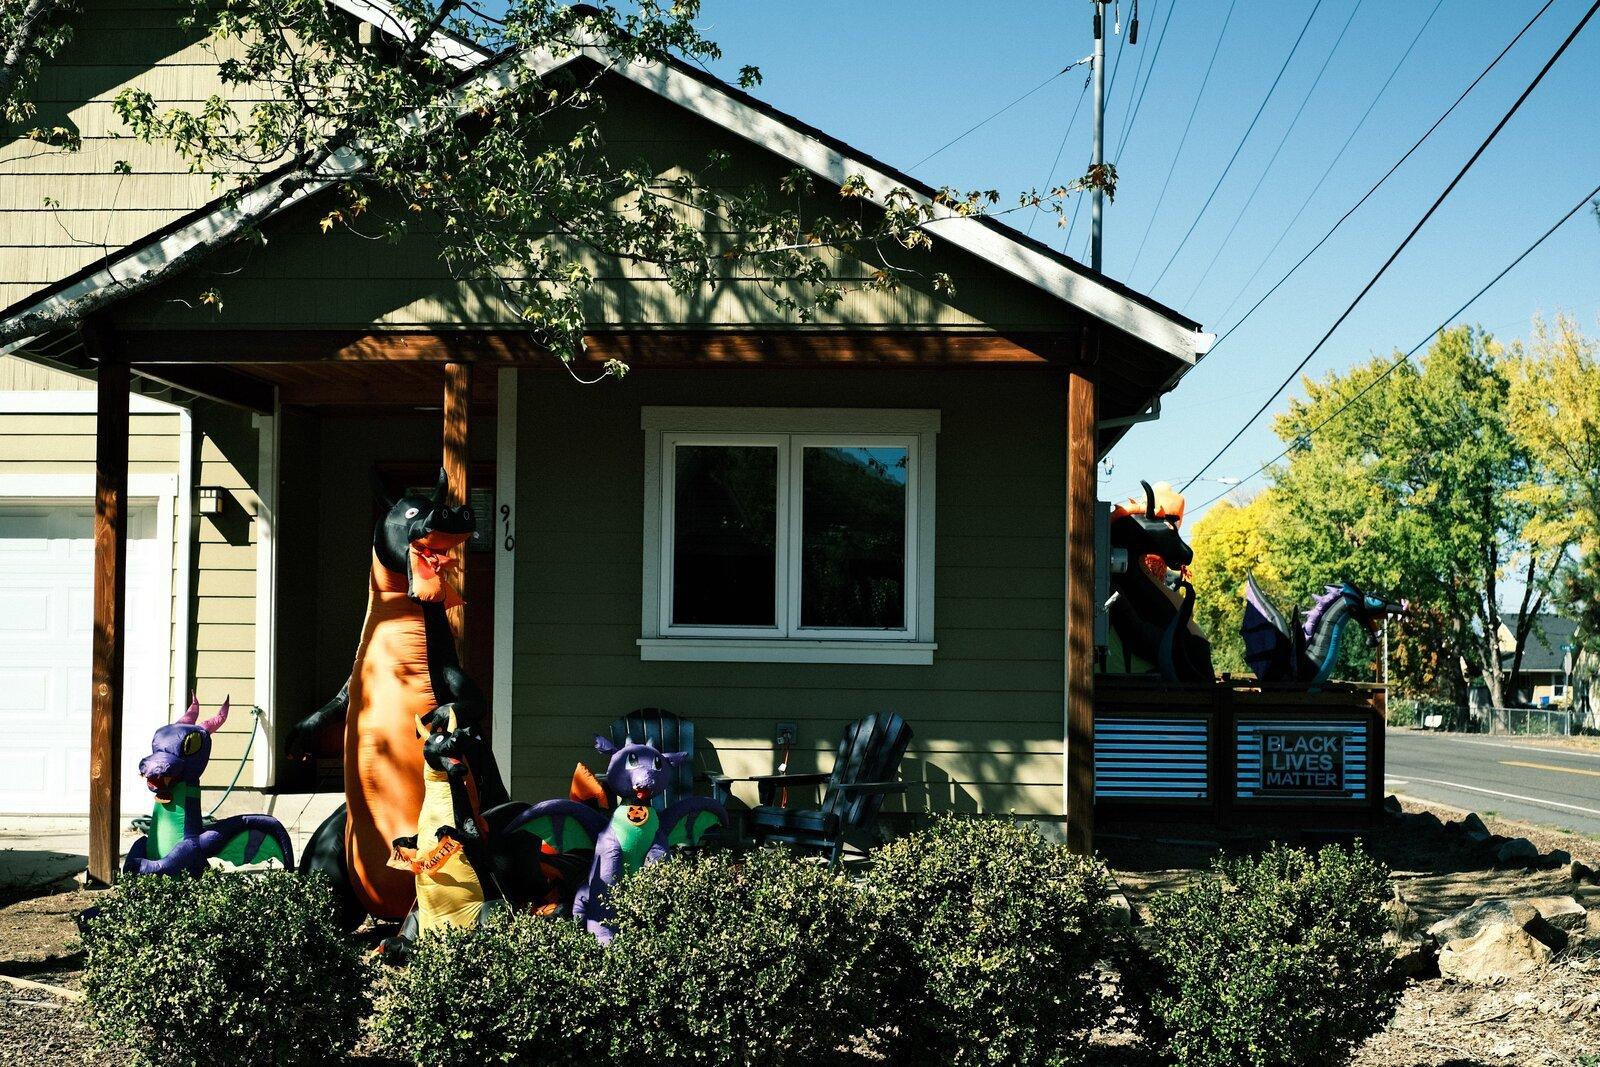 XPro3_Oct9_21_house_w-blow-up_dragons.jpg